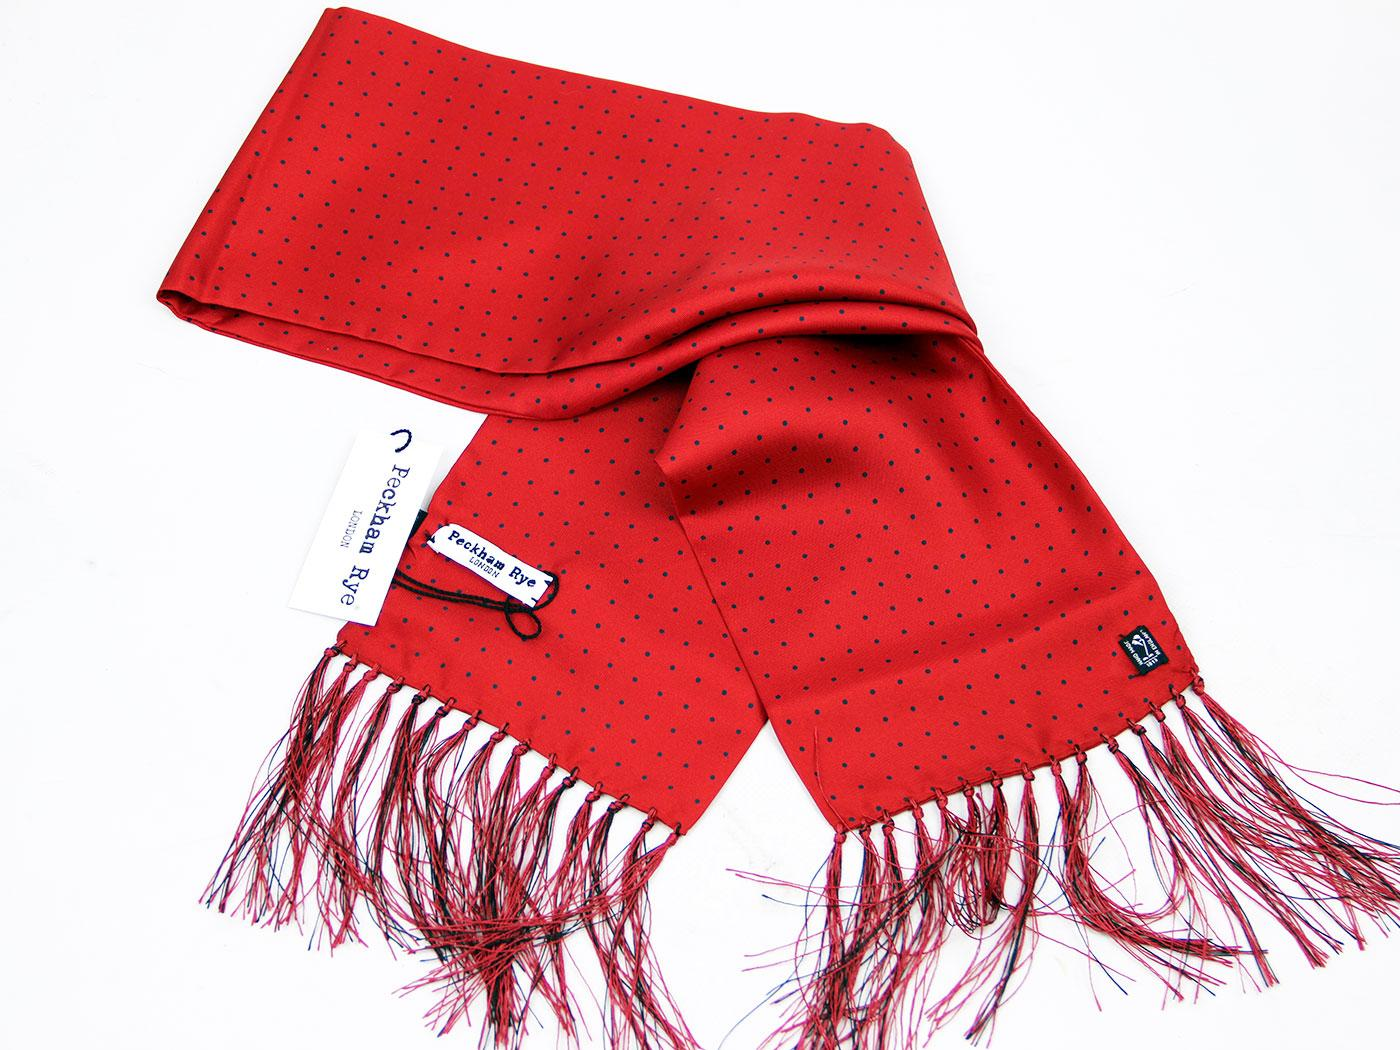 London Spot PECKHAM RYE Retro Mod Red Silk Scarf